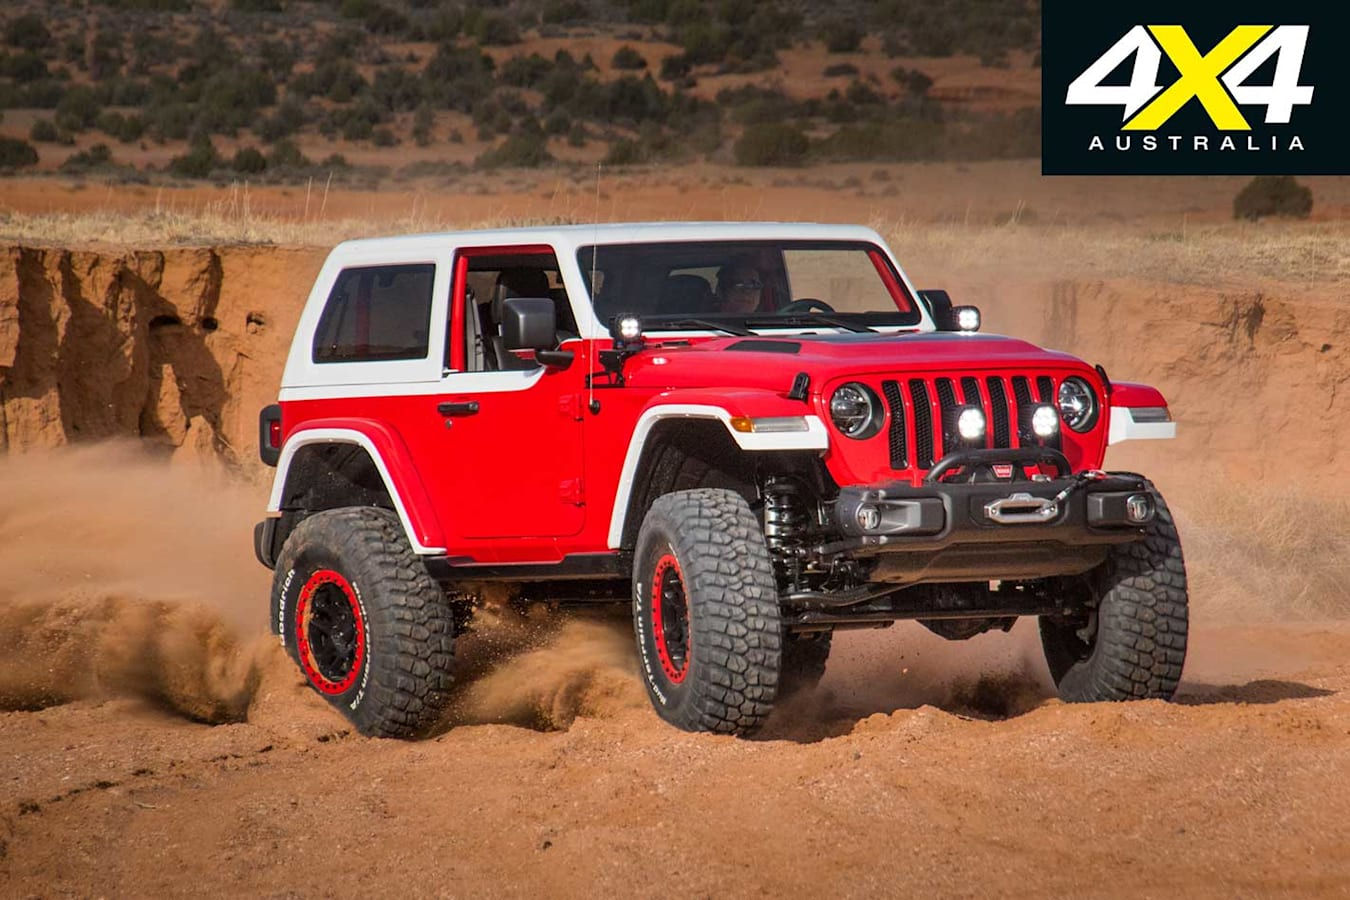 2018 Moab Easter Jeep Safari Concept 4 X 4 Highlights Jeepster Jpg